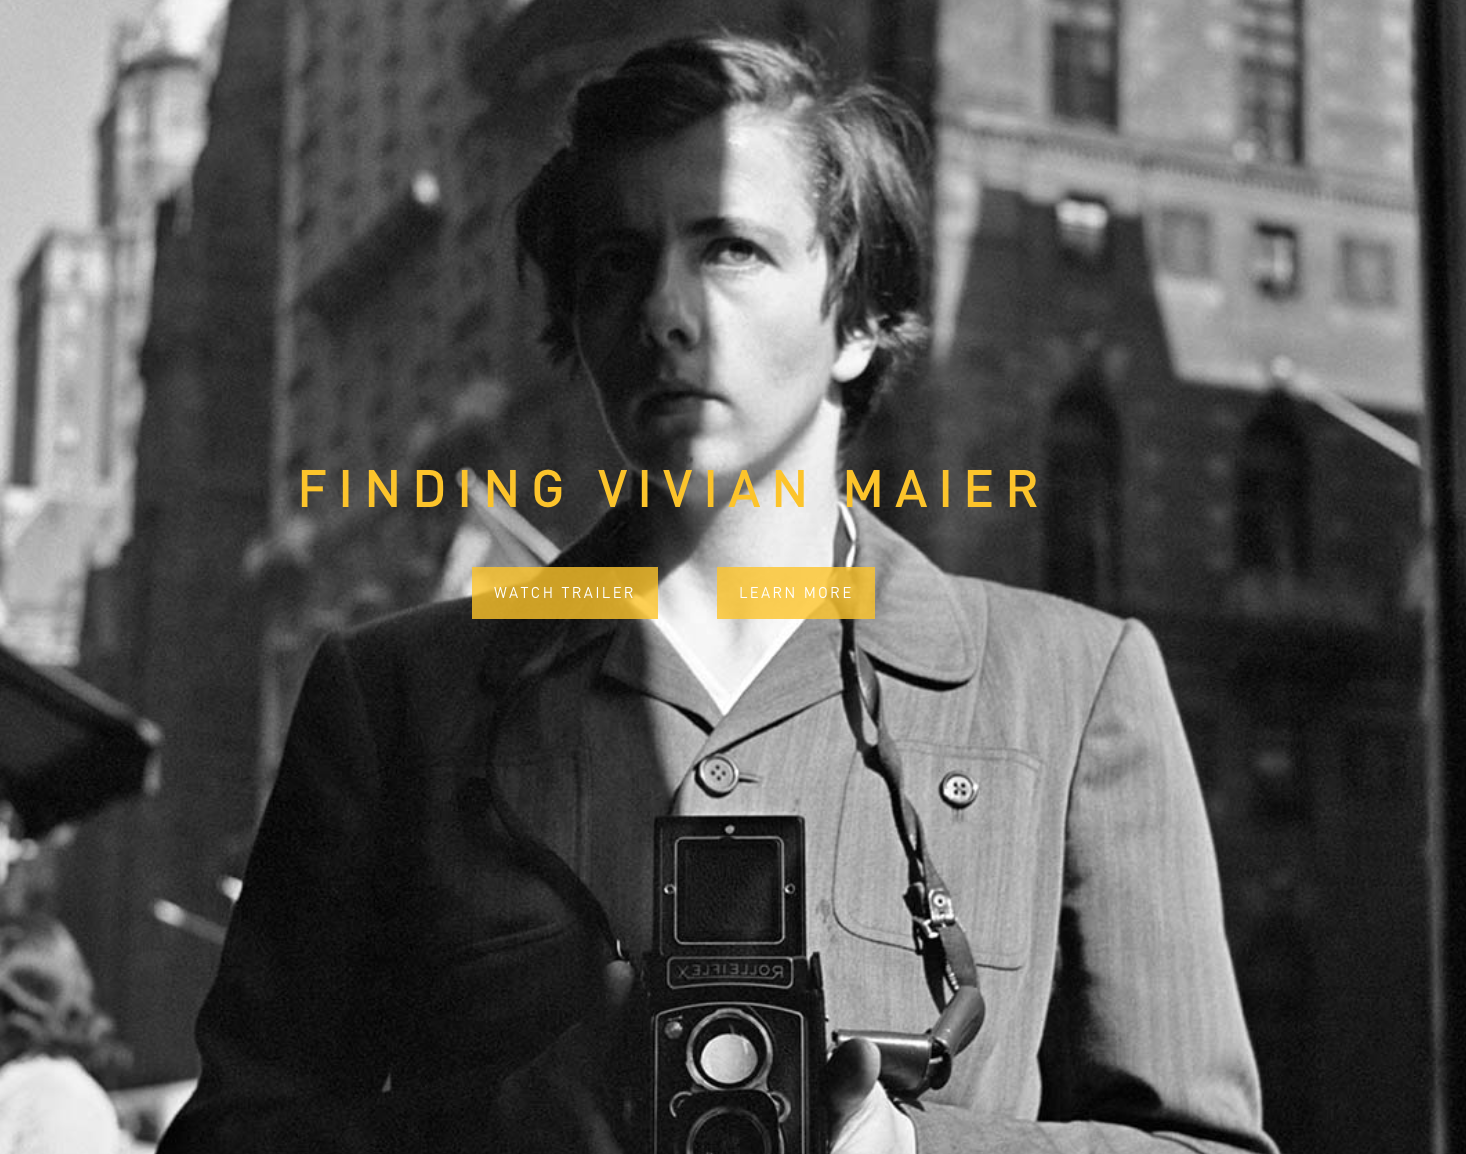 Finding Vivian Maier is the critically acclaimed documentary about a mysterious nanny, who secretly took over 100,000 photographs that were hidden in storage lockers and, discovered decades later, is now among the 20th century's greatest photographers. Directed by John Maloof and Charlie Siskel, Maier's strange and riveting life and art are revealed through never before seen photographs, films, and interviews with dozens who thought they knew her.